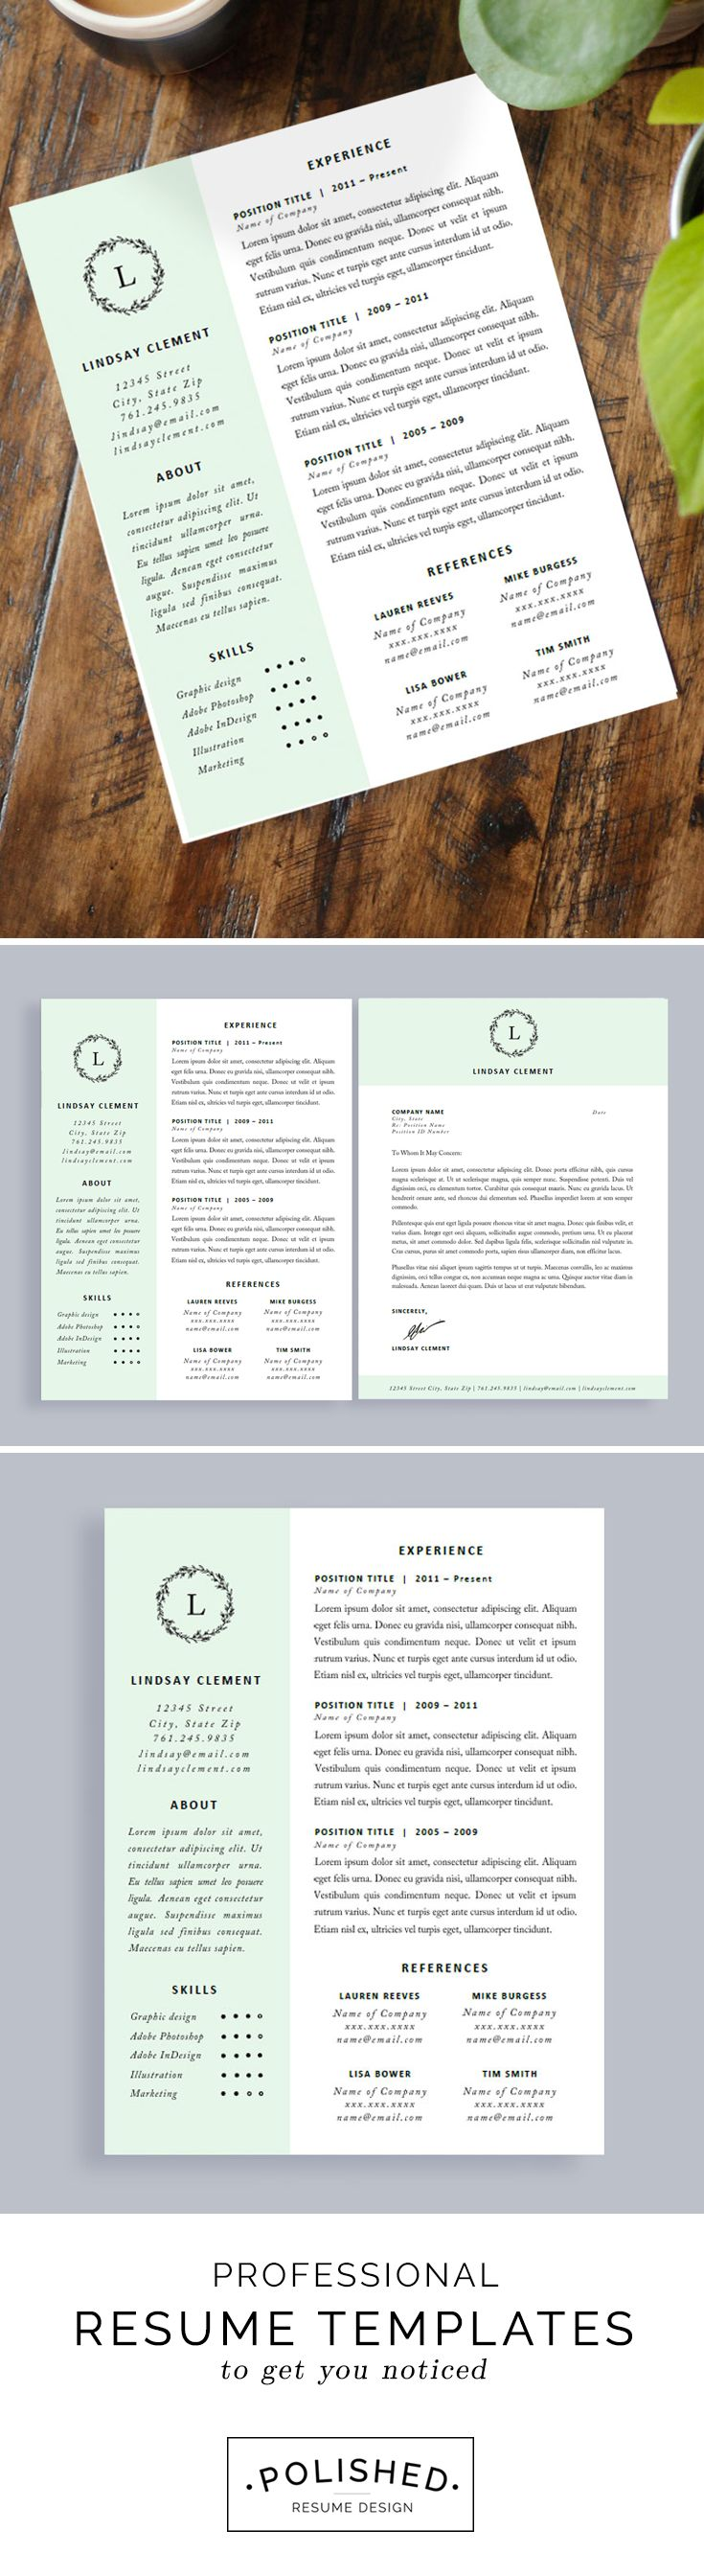 professional resume template cover letter cv professional modern creative resume template ms word for mac pc us letter best cv - Writing A Cover Letter For A Resume